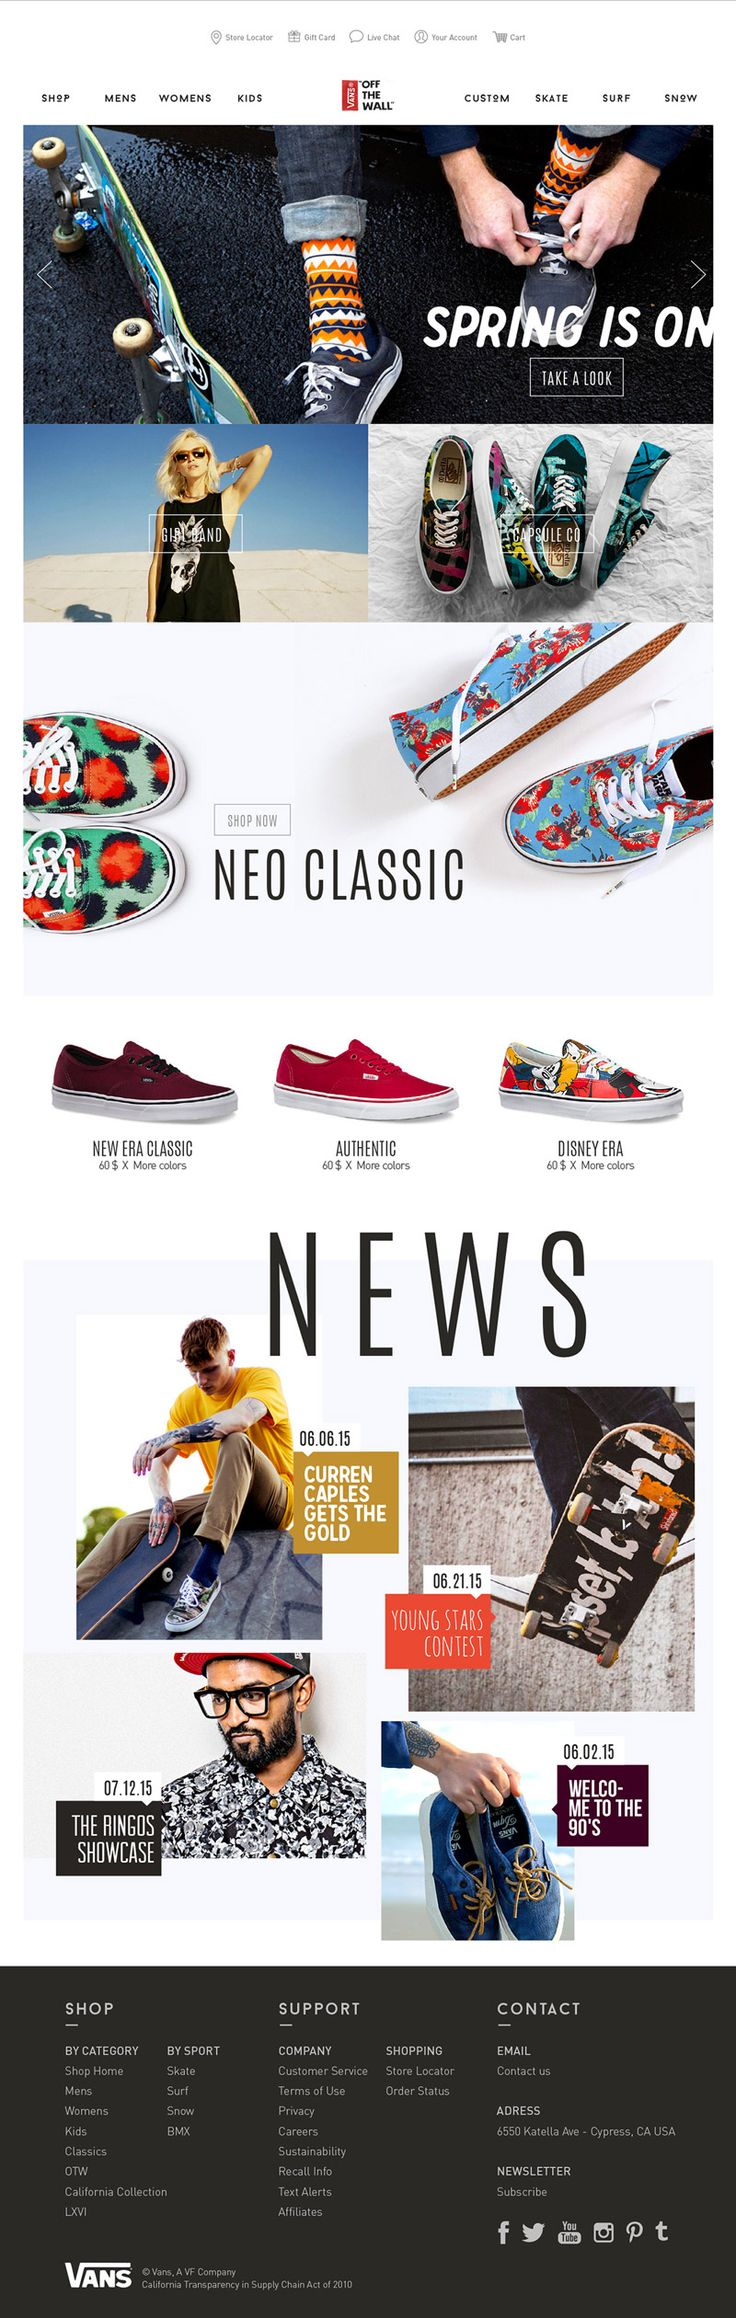 VANS Website Redesign Concept